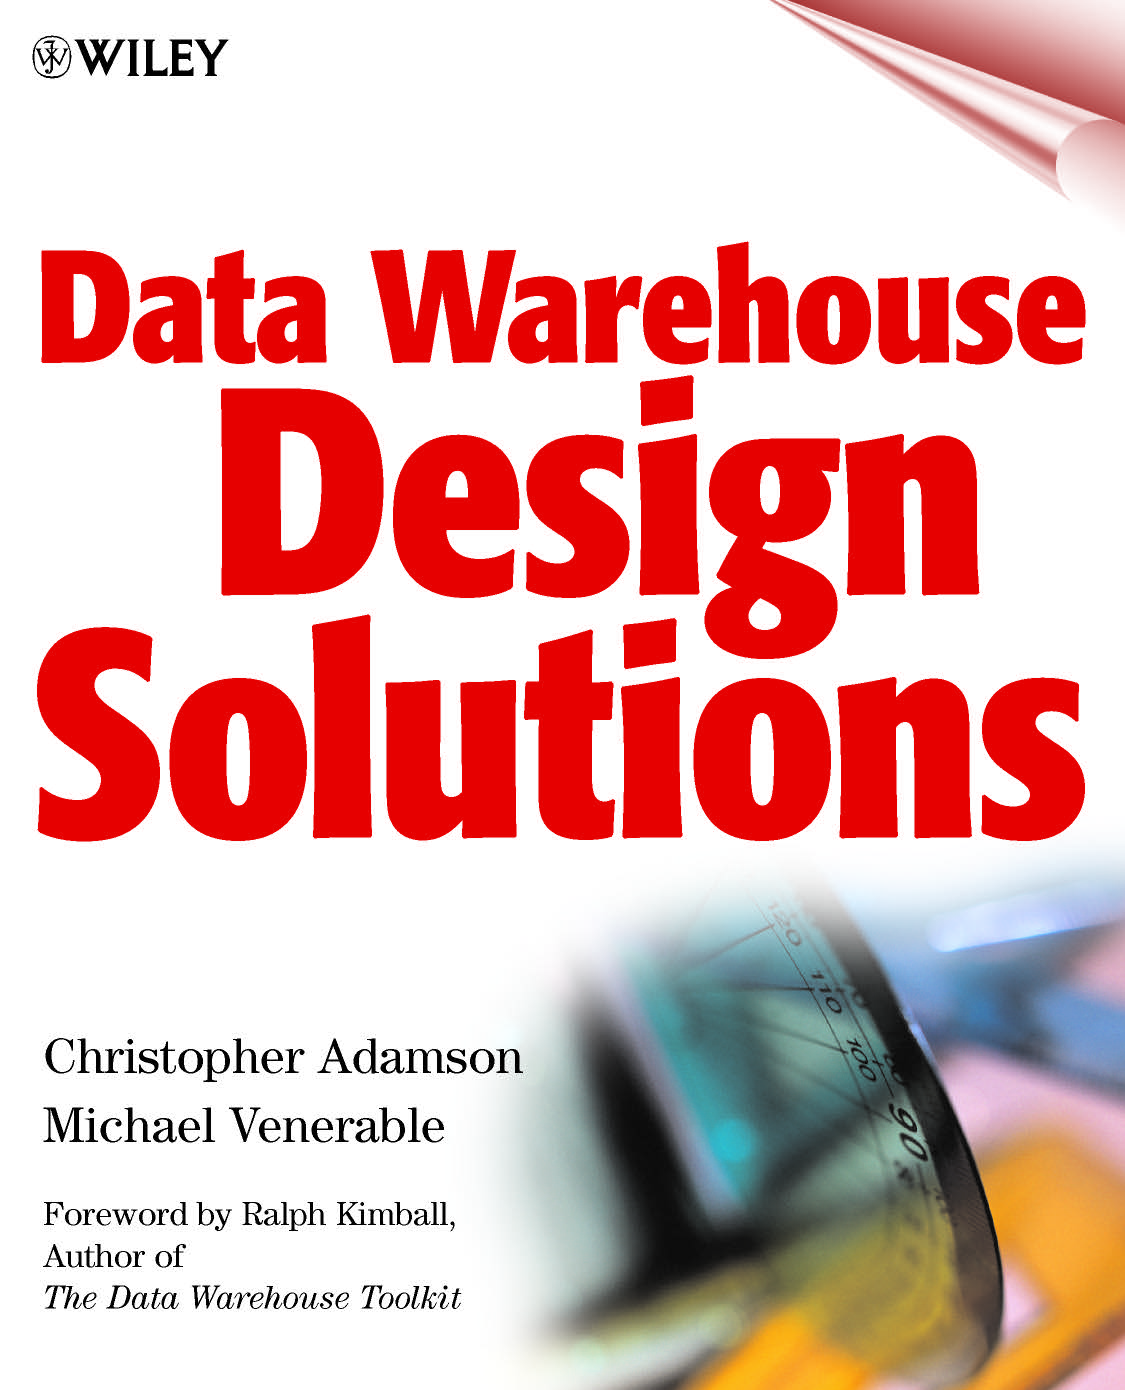 Book Cover: Data Warehouse Design Solutions by Chris Adamson and Mike Venerable